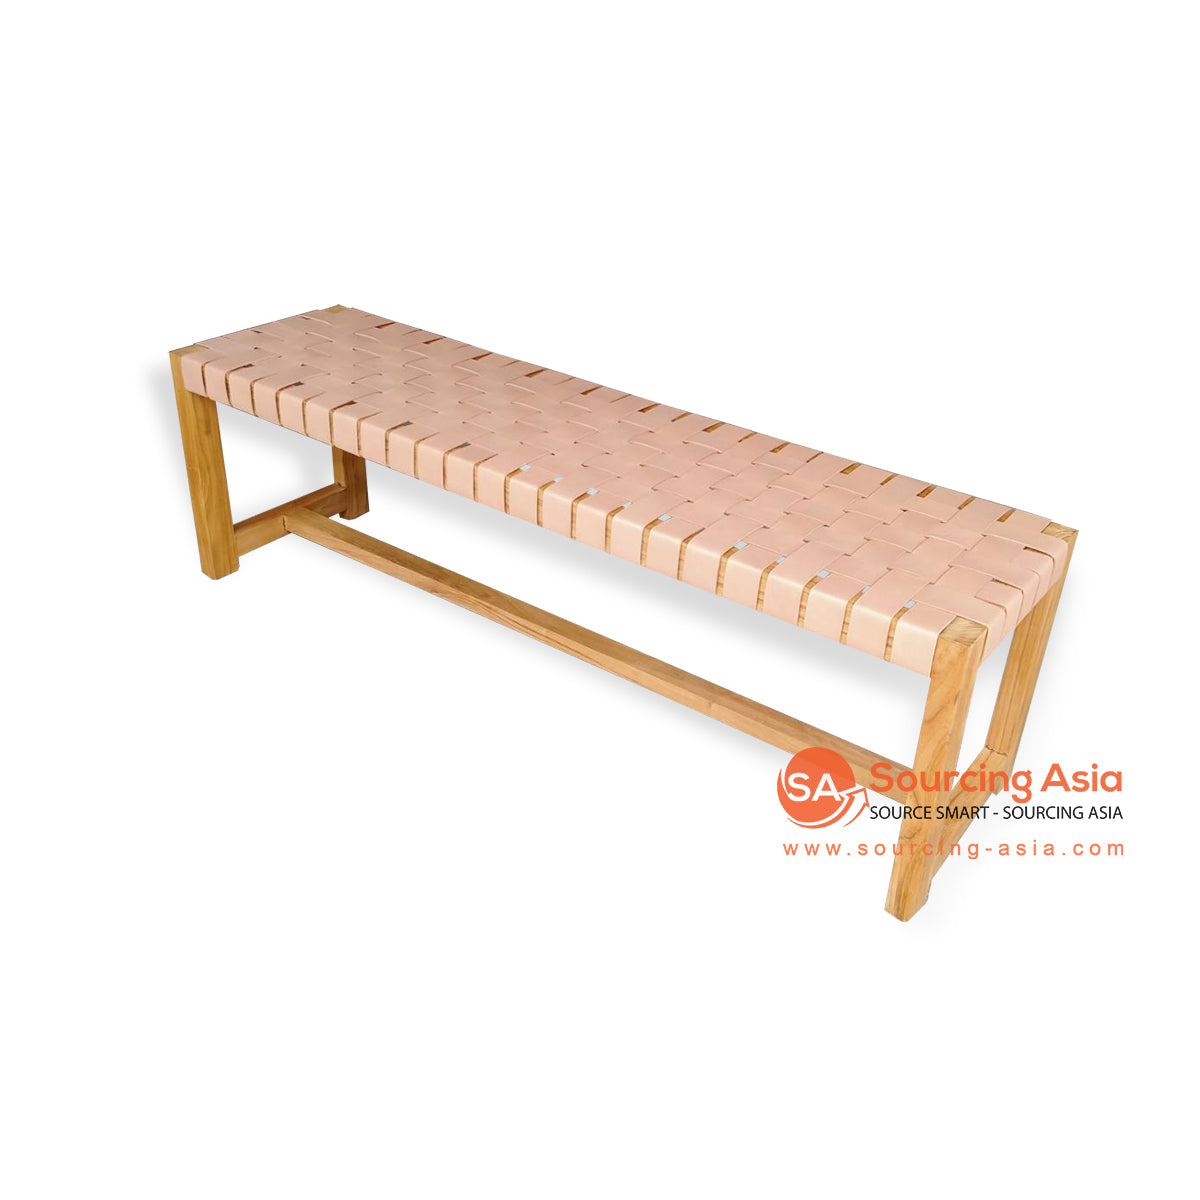 IJF019 WOVEN LEATHER BED END BENCH